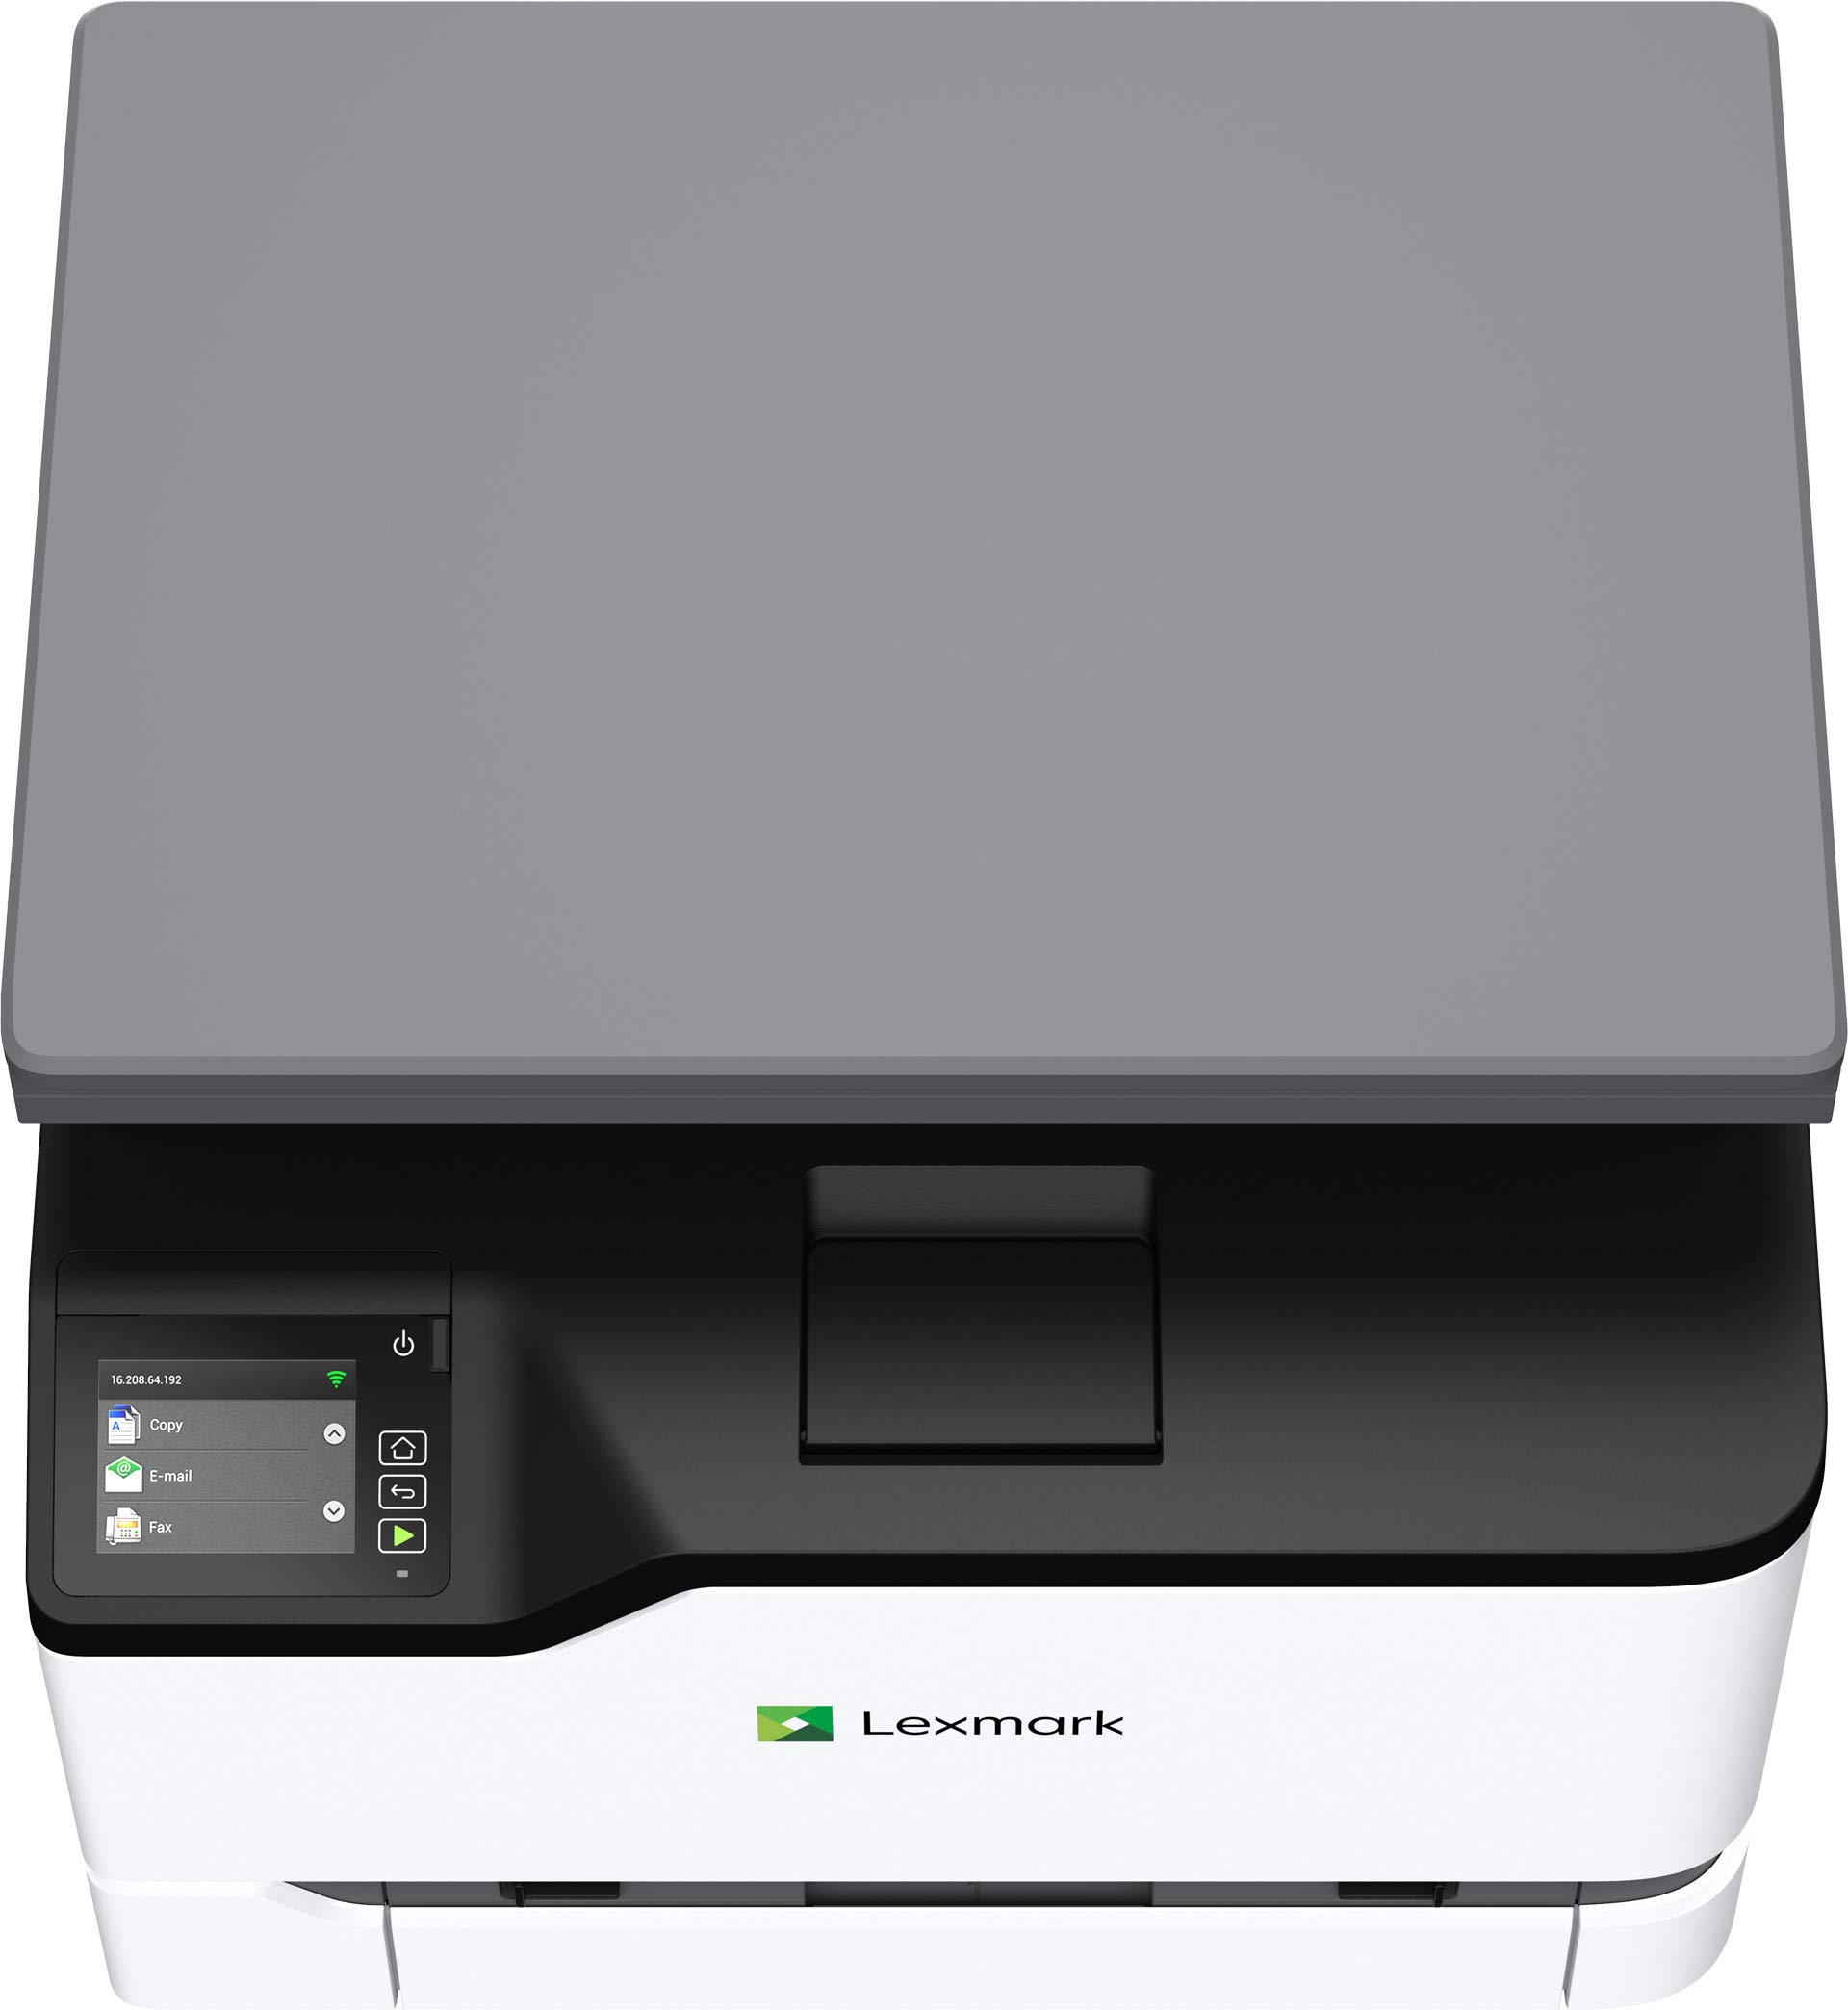 Lexmark MC3224dwe Color Multifunction Laser Printer with Print, Copy, Scan, and Wireless Capabilities, Two-Sided Printing with Full-Spectrum Security and Prints Up to 24 ppm (40N9040) by Lexmark (Image #6)